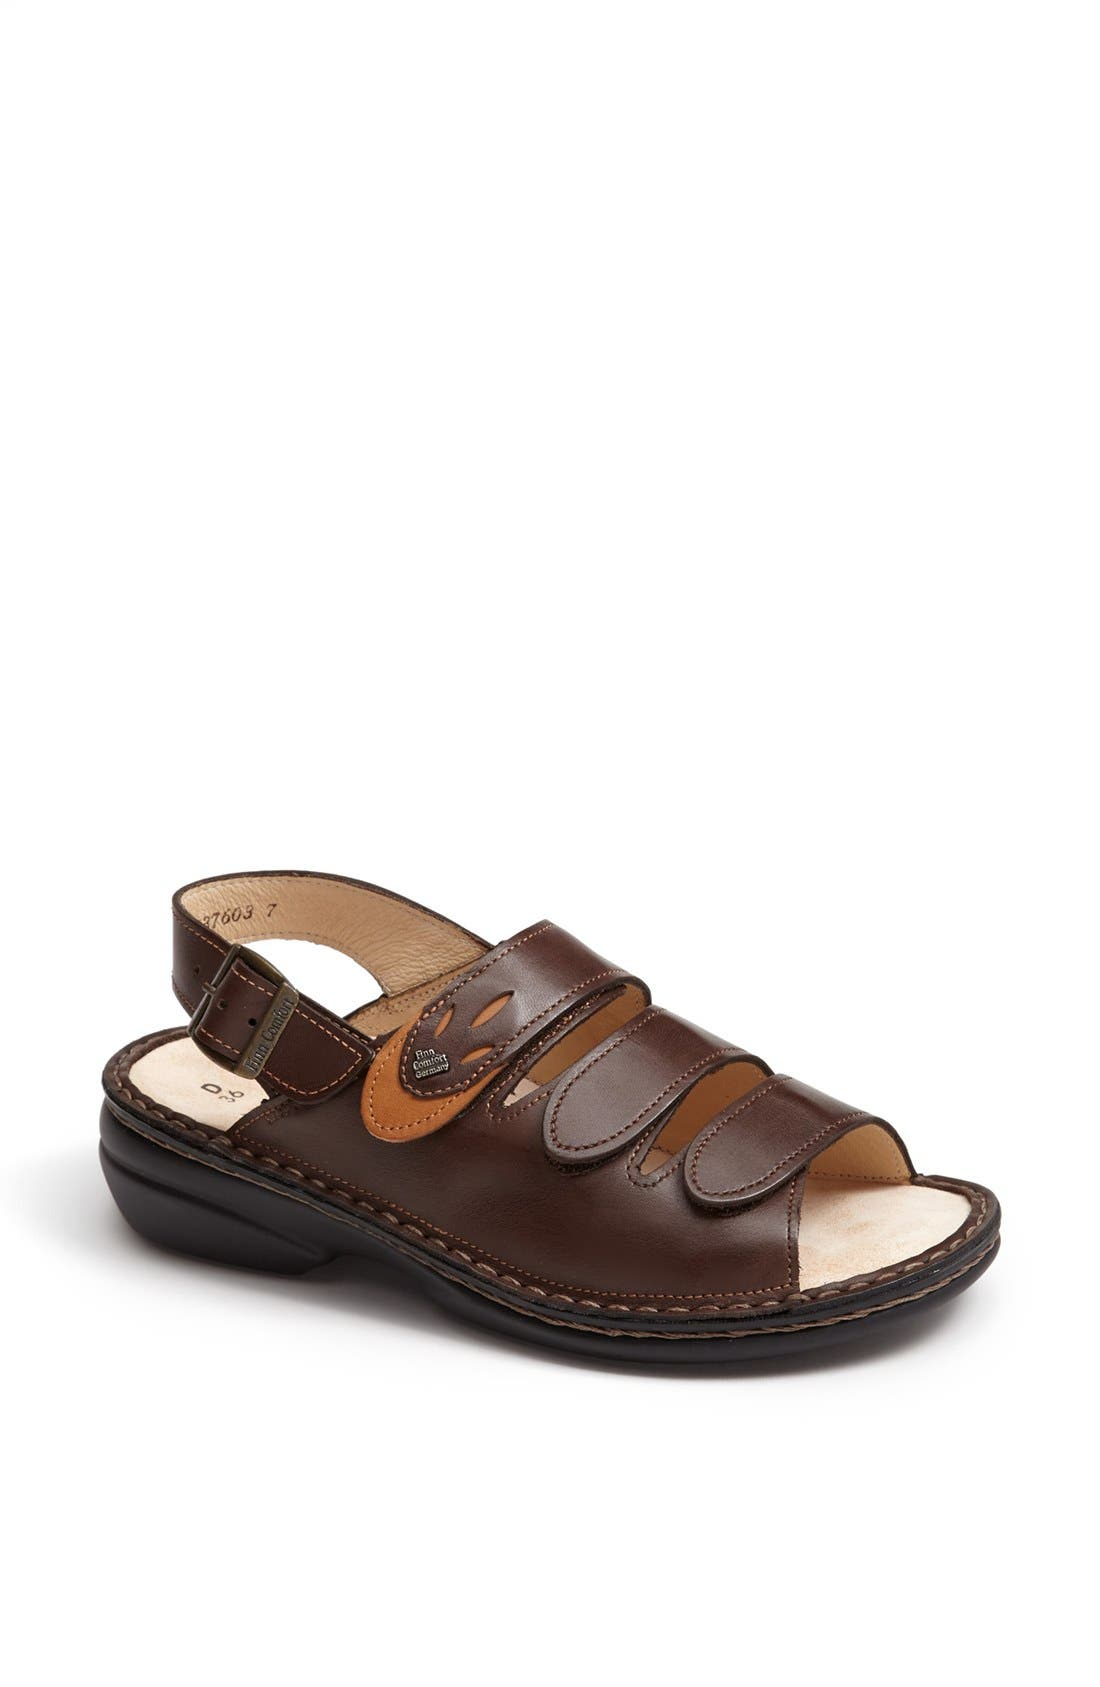 Alternate Image 1 Selected - Finn Comfort 'Saloniki' Sandal